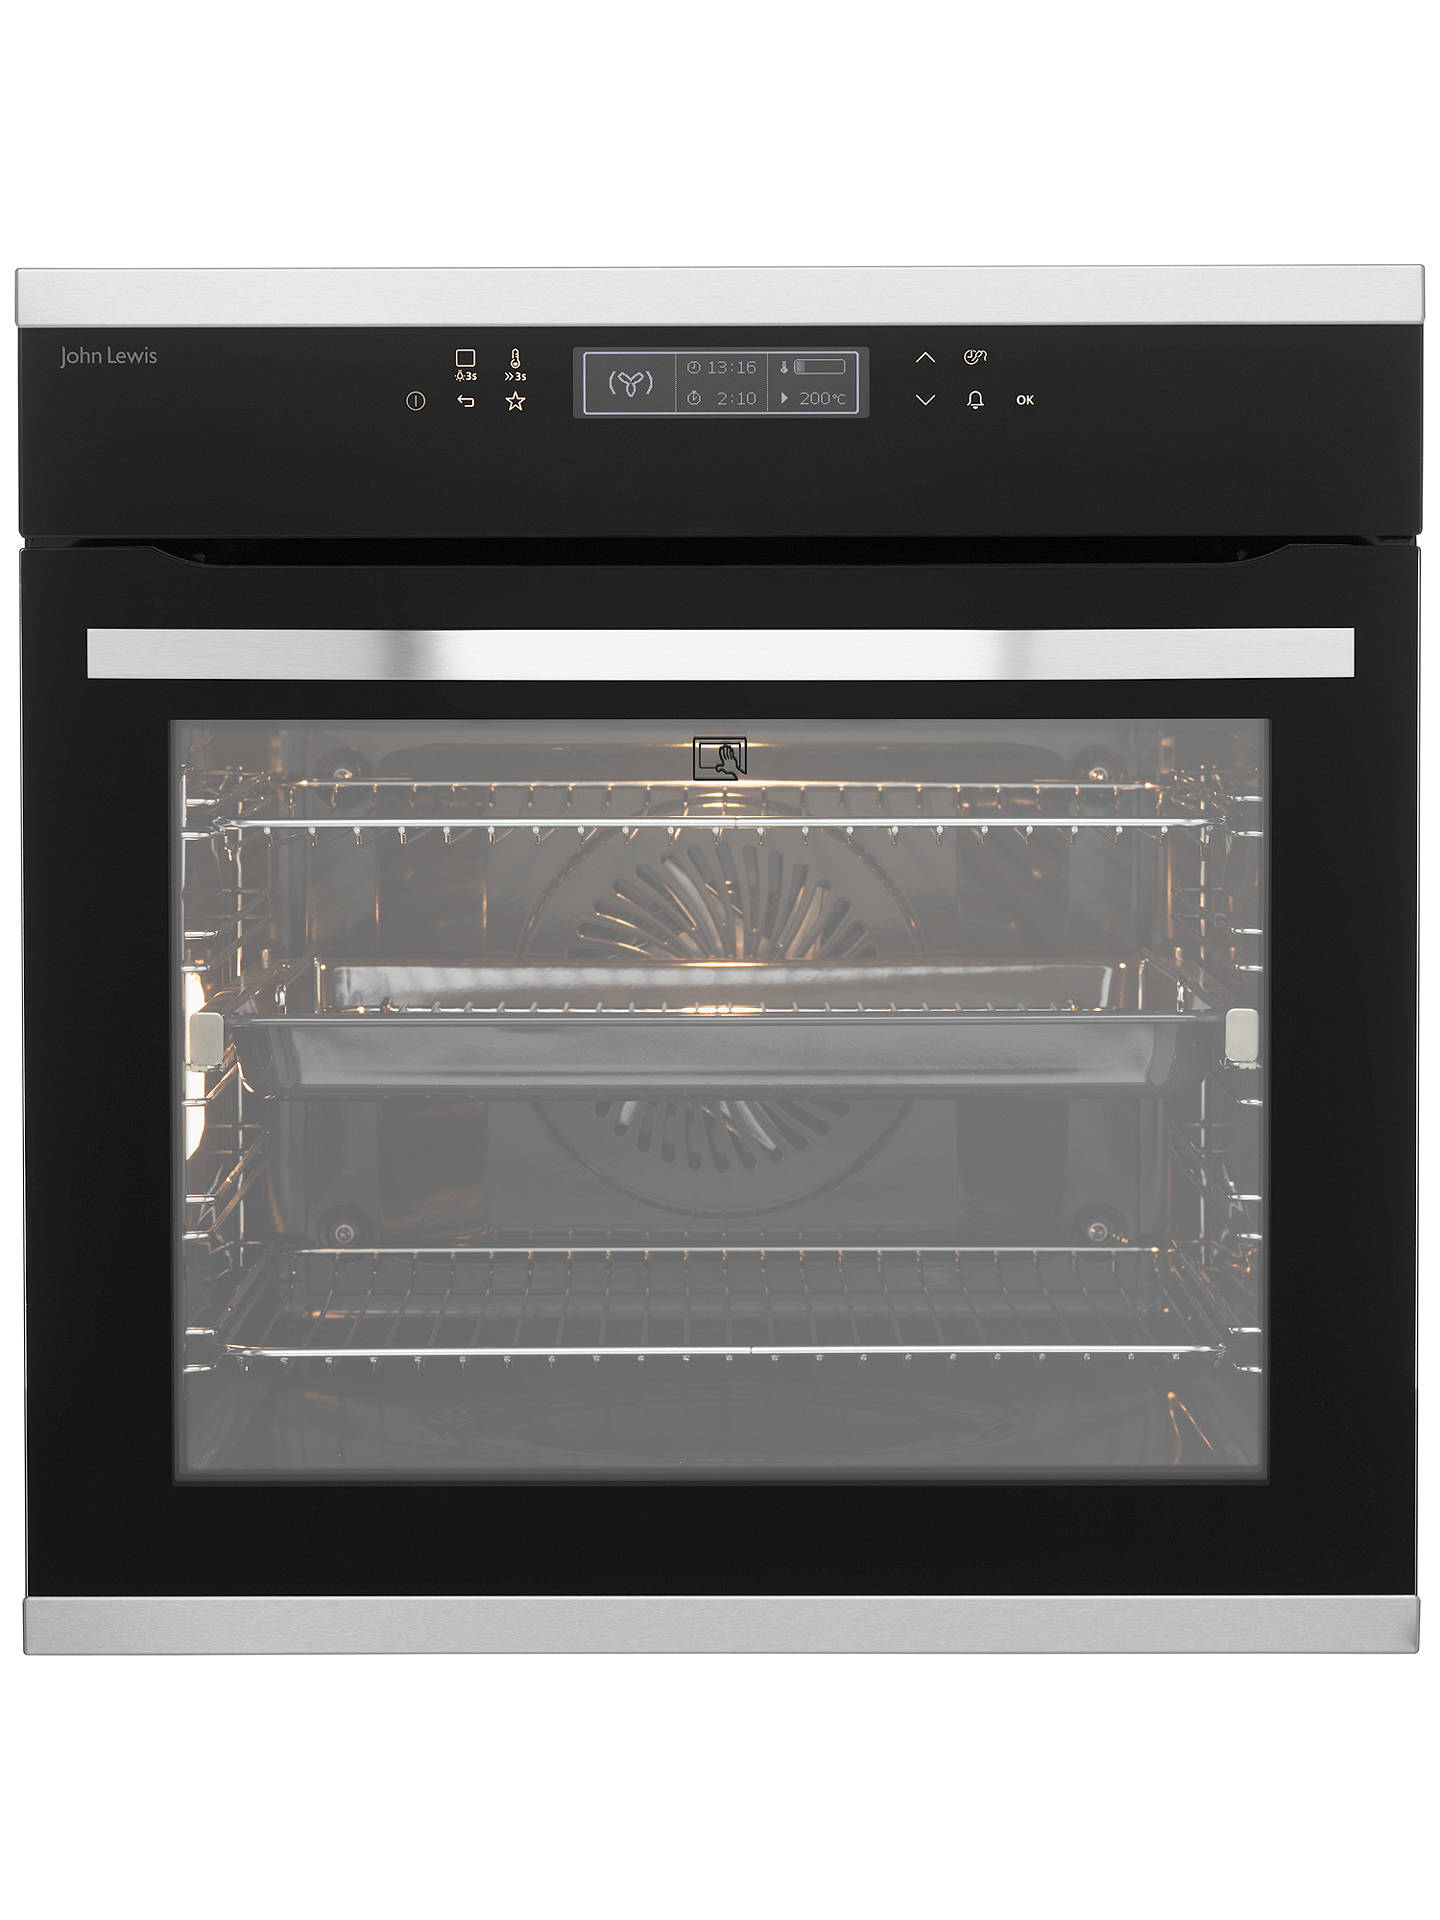 Buy John Lewis & Partners JLBIOS634 Pyrolytic Single Multifunction Oven, Stainless Steel Online at johnlewis.com